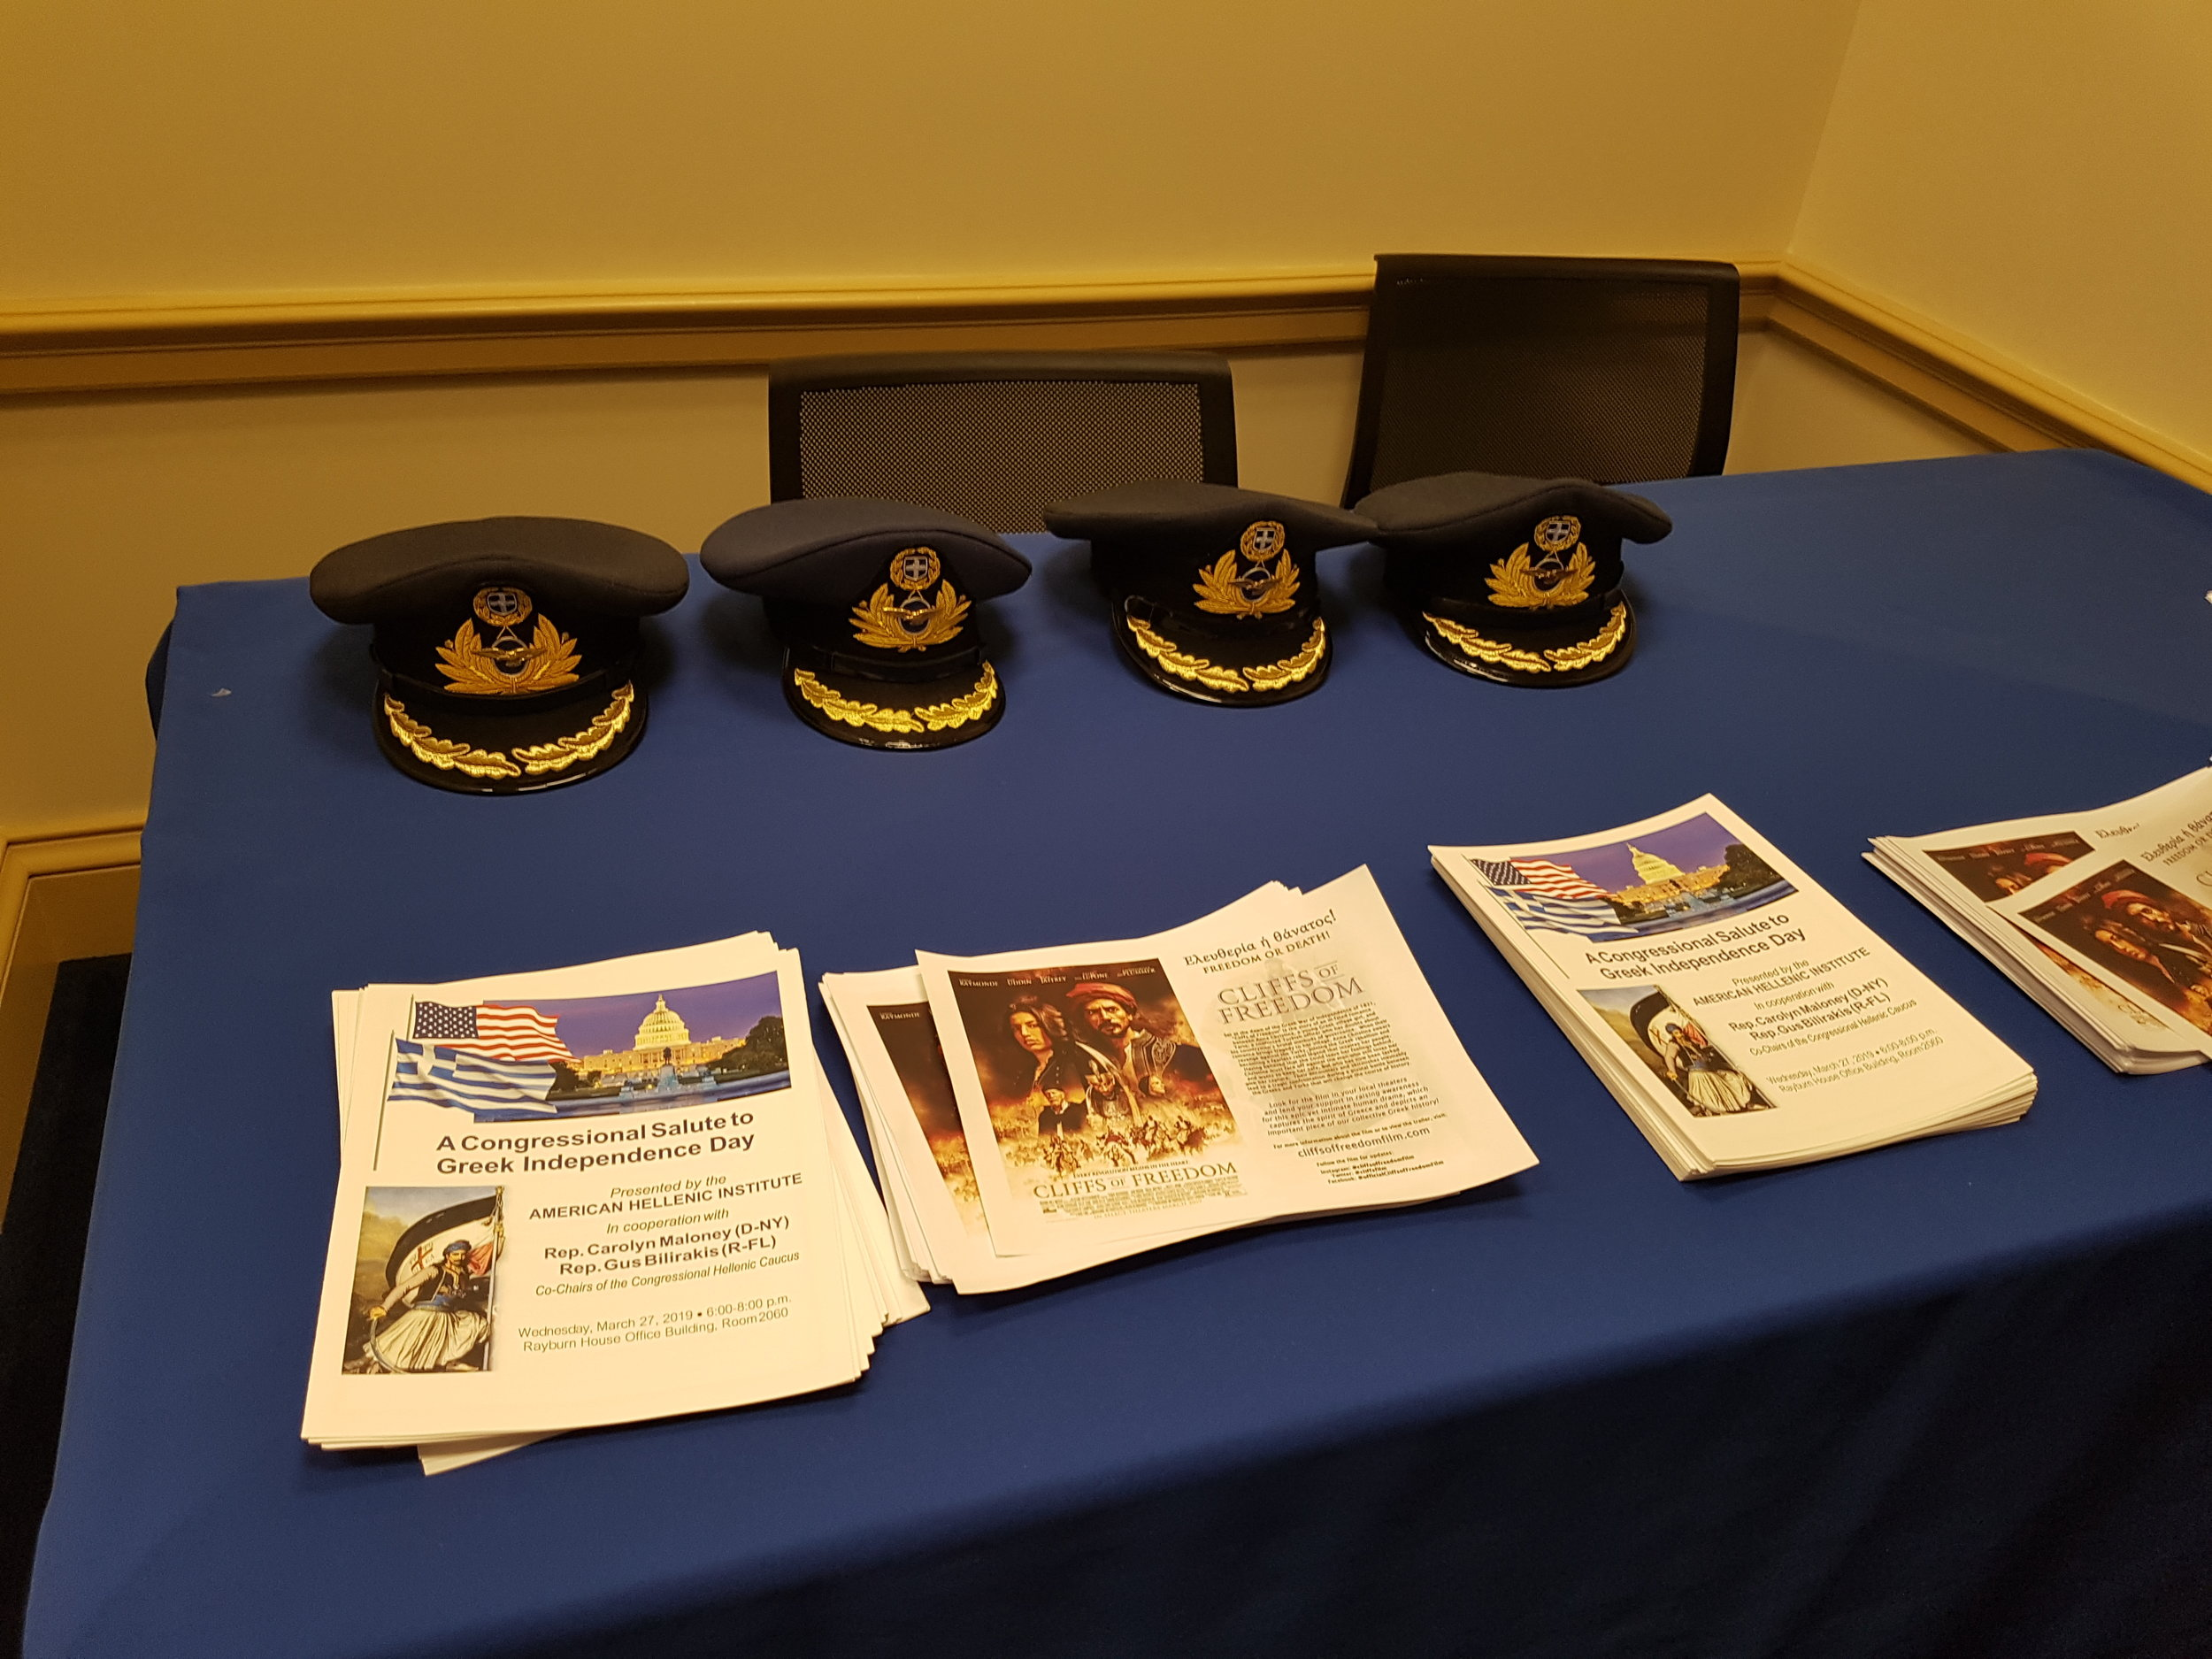 Hats Worn By Defense Attaches, Advertisements For The Film  Cliffs of Freedom , And Programs For The Congressional Salute To Greek Independence Day Event